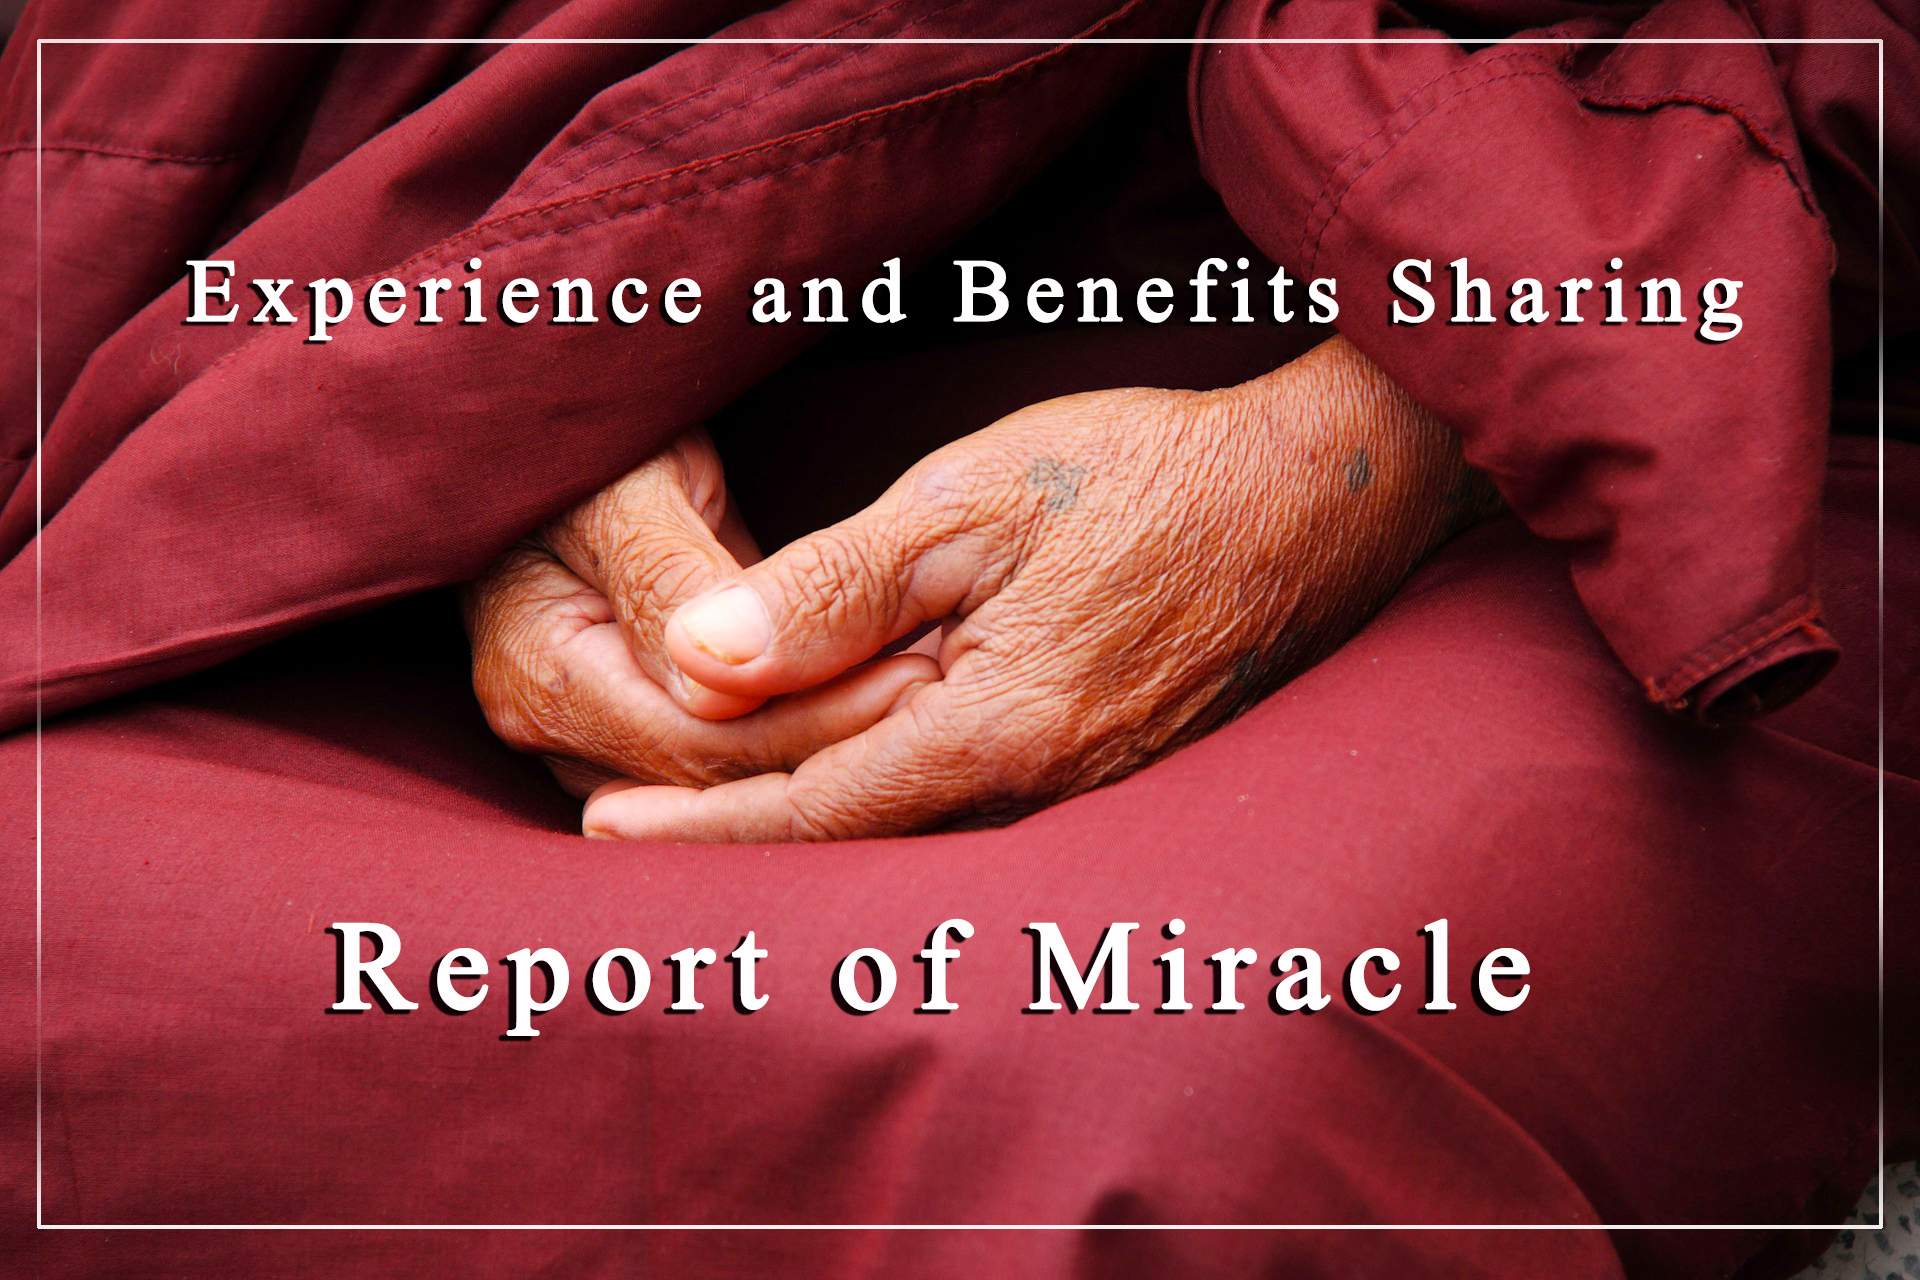 Experience and Benefits Sharing- Report of Miracle